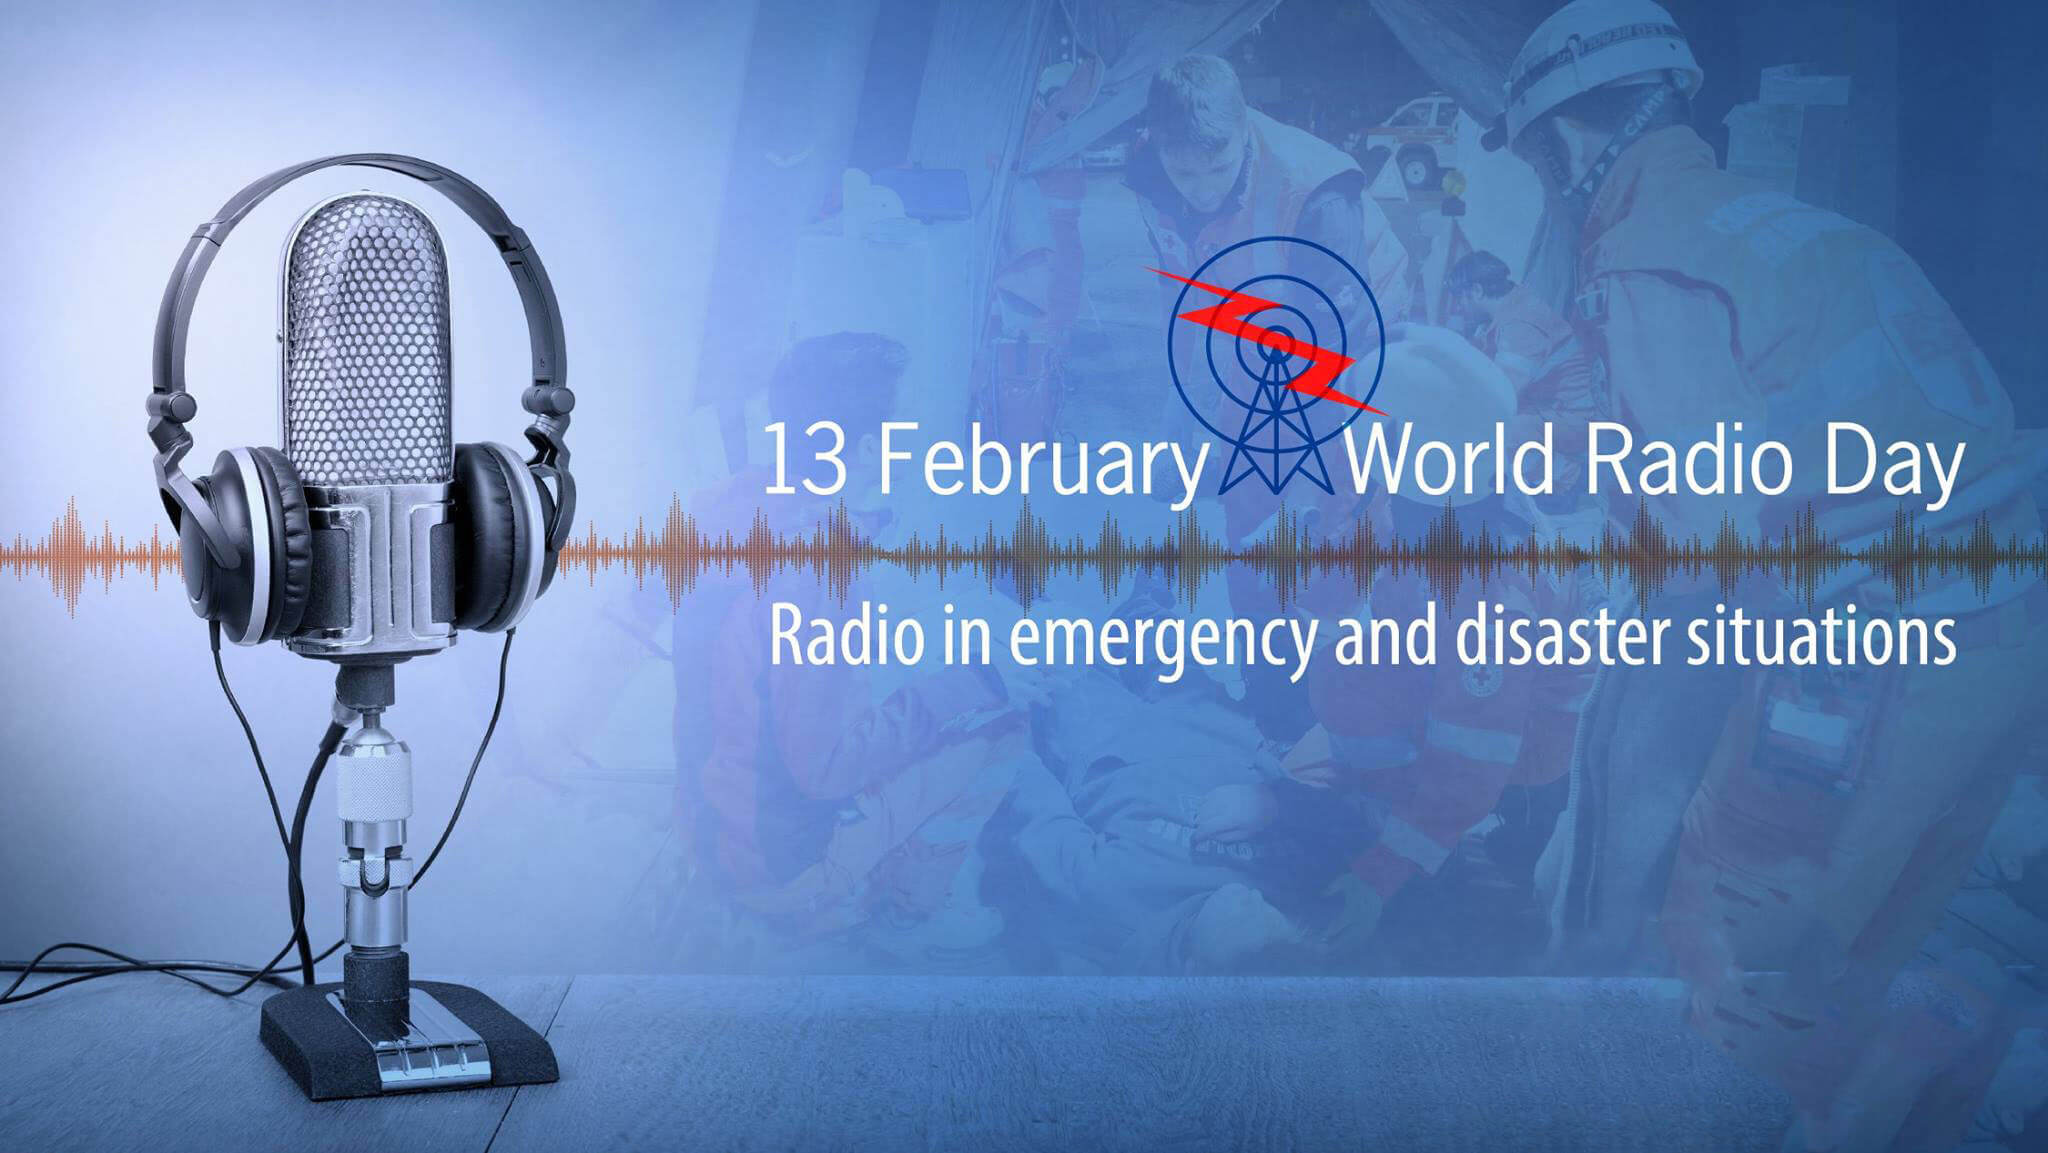 world radio day new wide desktop background hd wallpaper